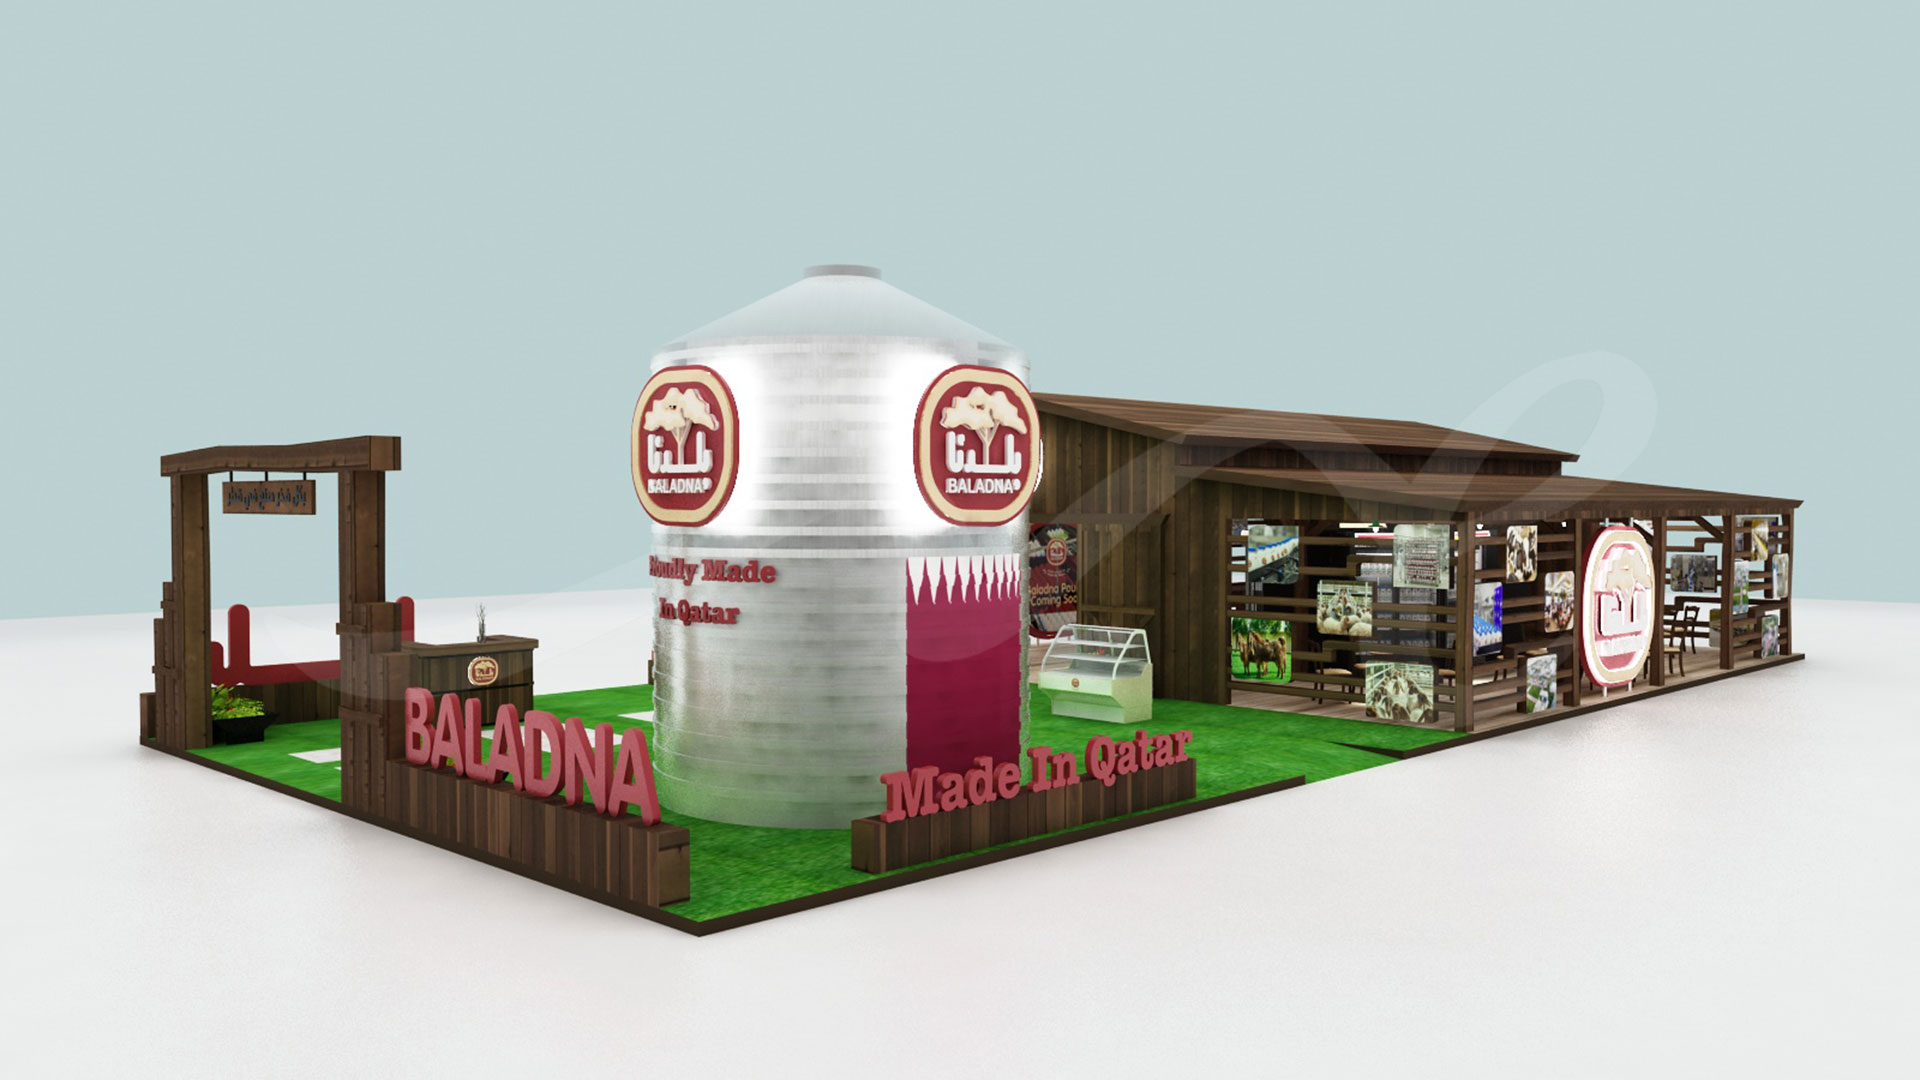 Baladna Exhibition Stand 3D Design by ME Visual for Agriteq 2019 featuring a custom made Silo